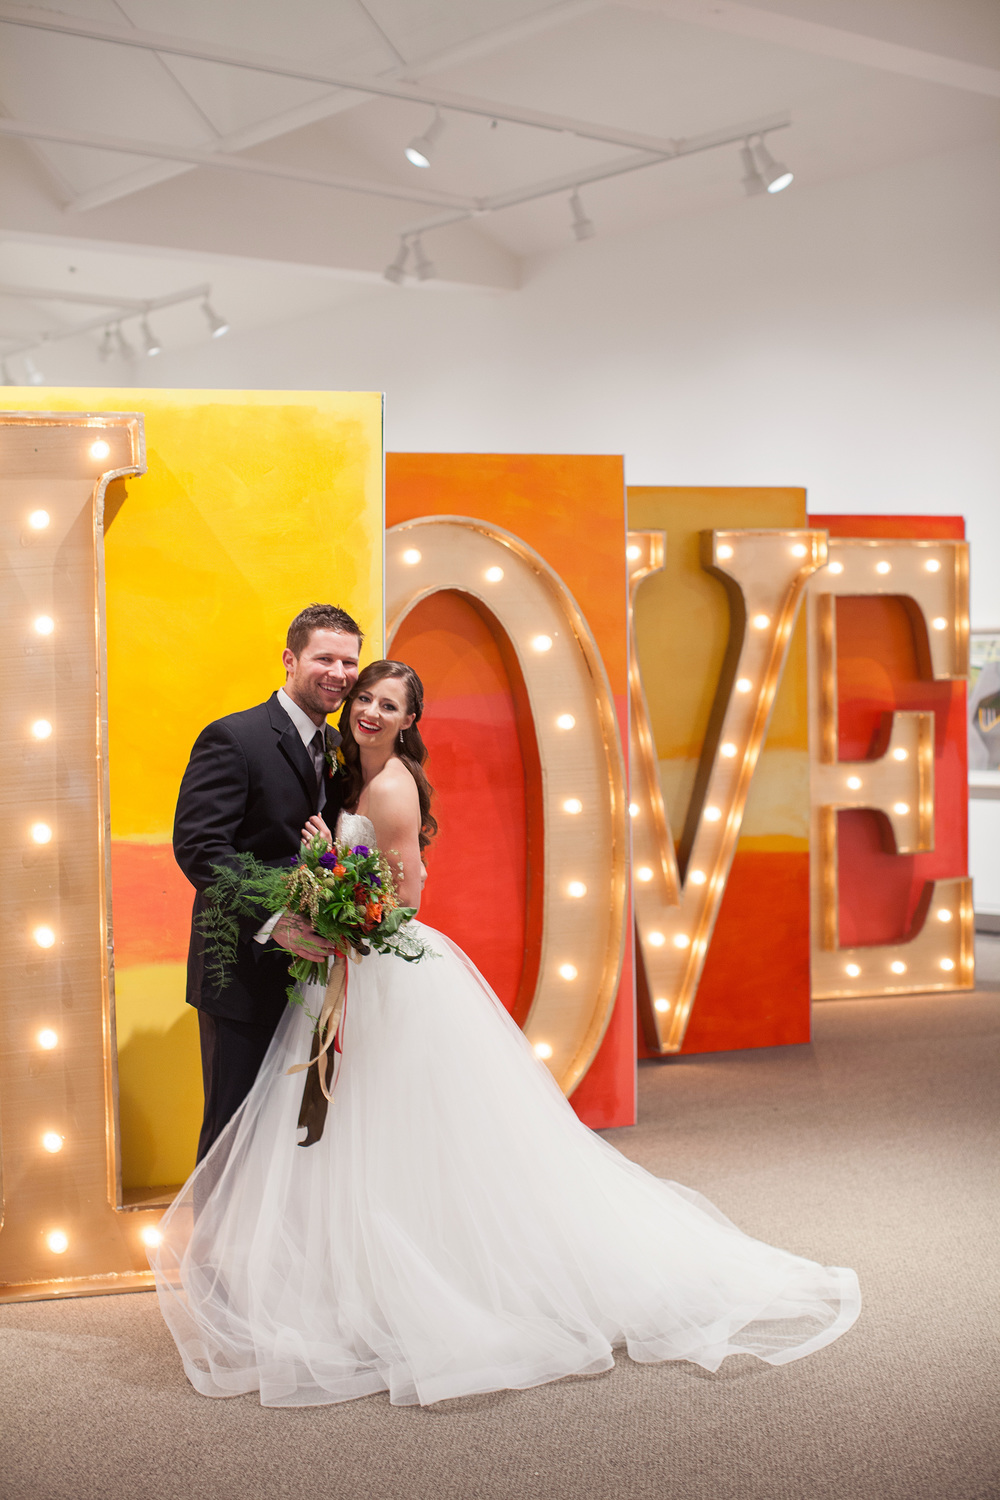 Artistic Vibrant Wedding